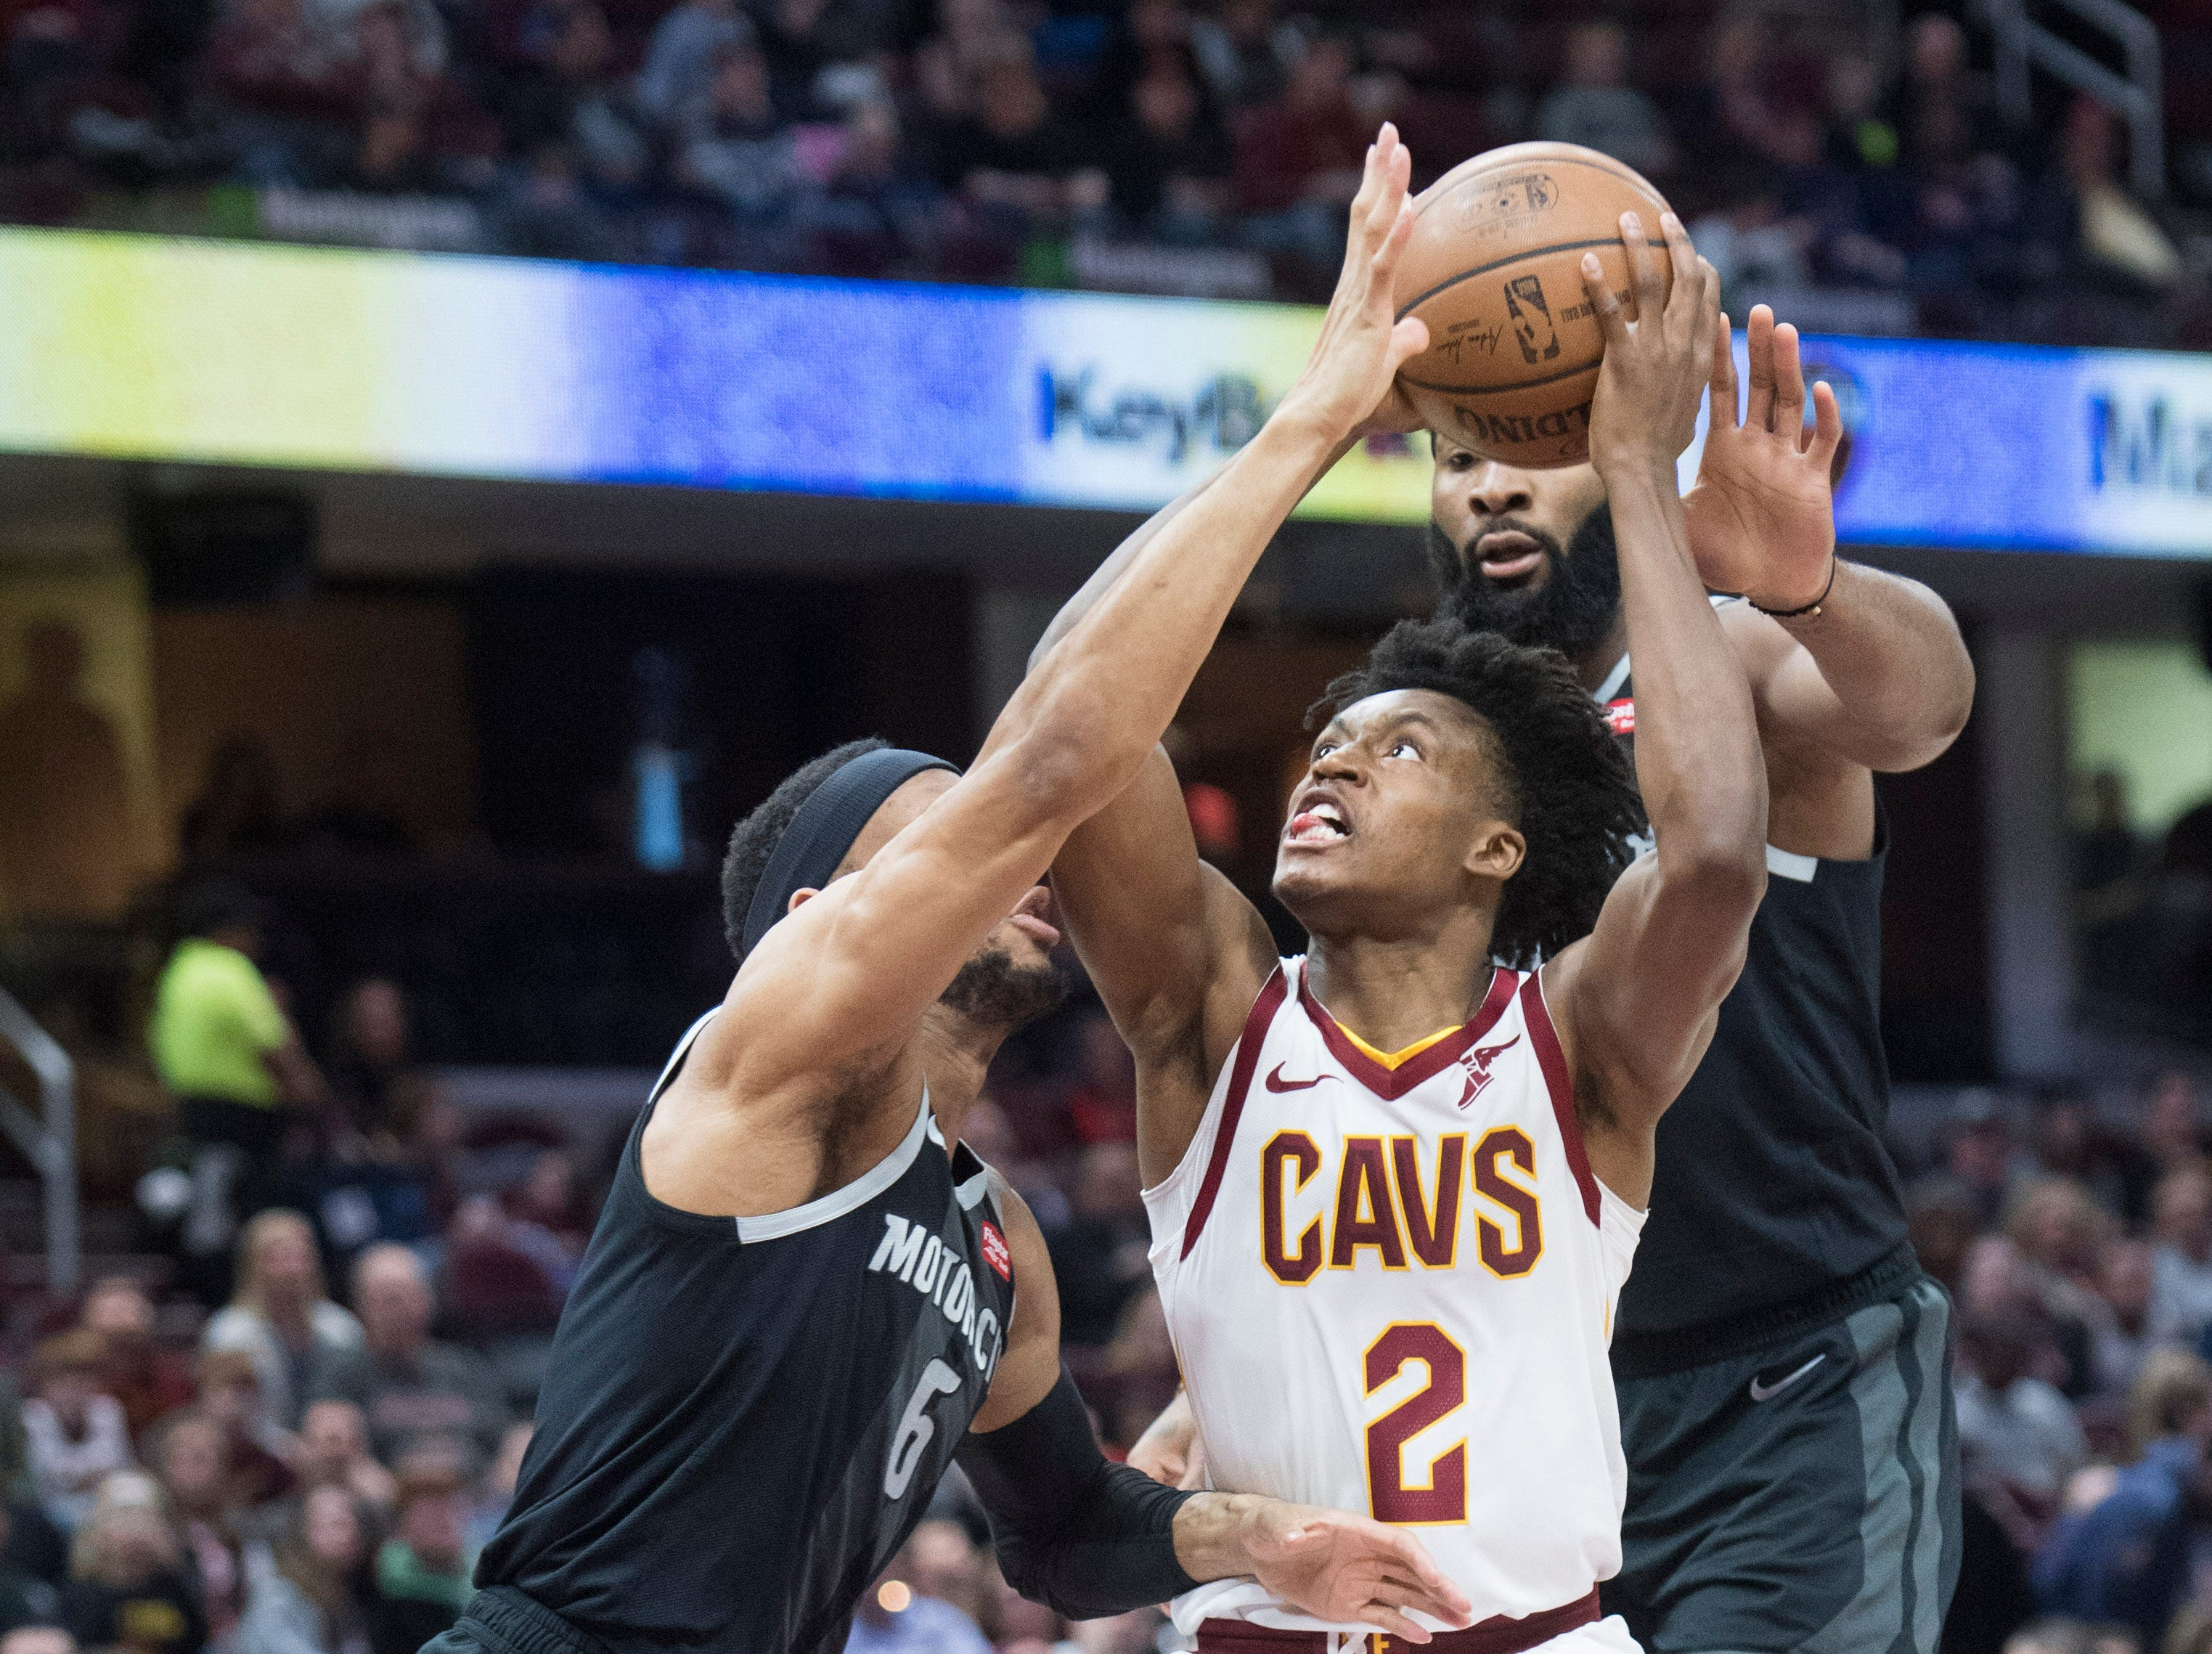 Cleveland Cavaliers' guard Collin Sexton drives to the basket between Detroit Pistons' guard Bruce Brown and center Andre Drummond in the first half of an NBA basketball game.